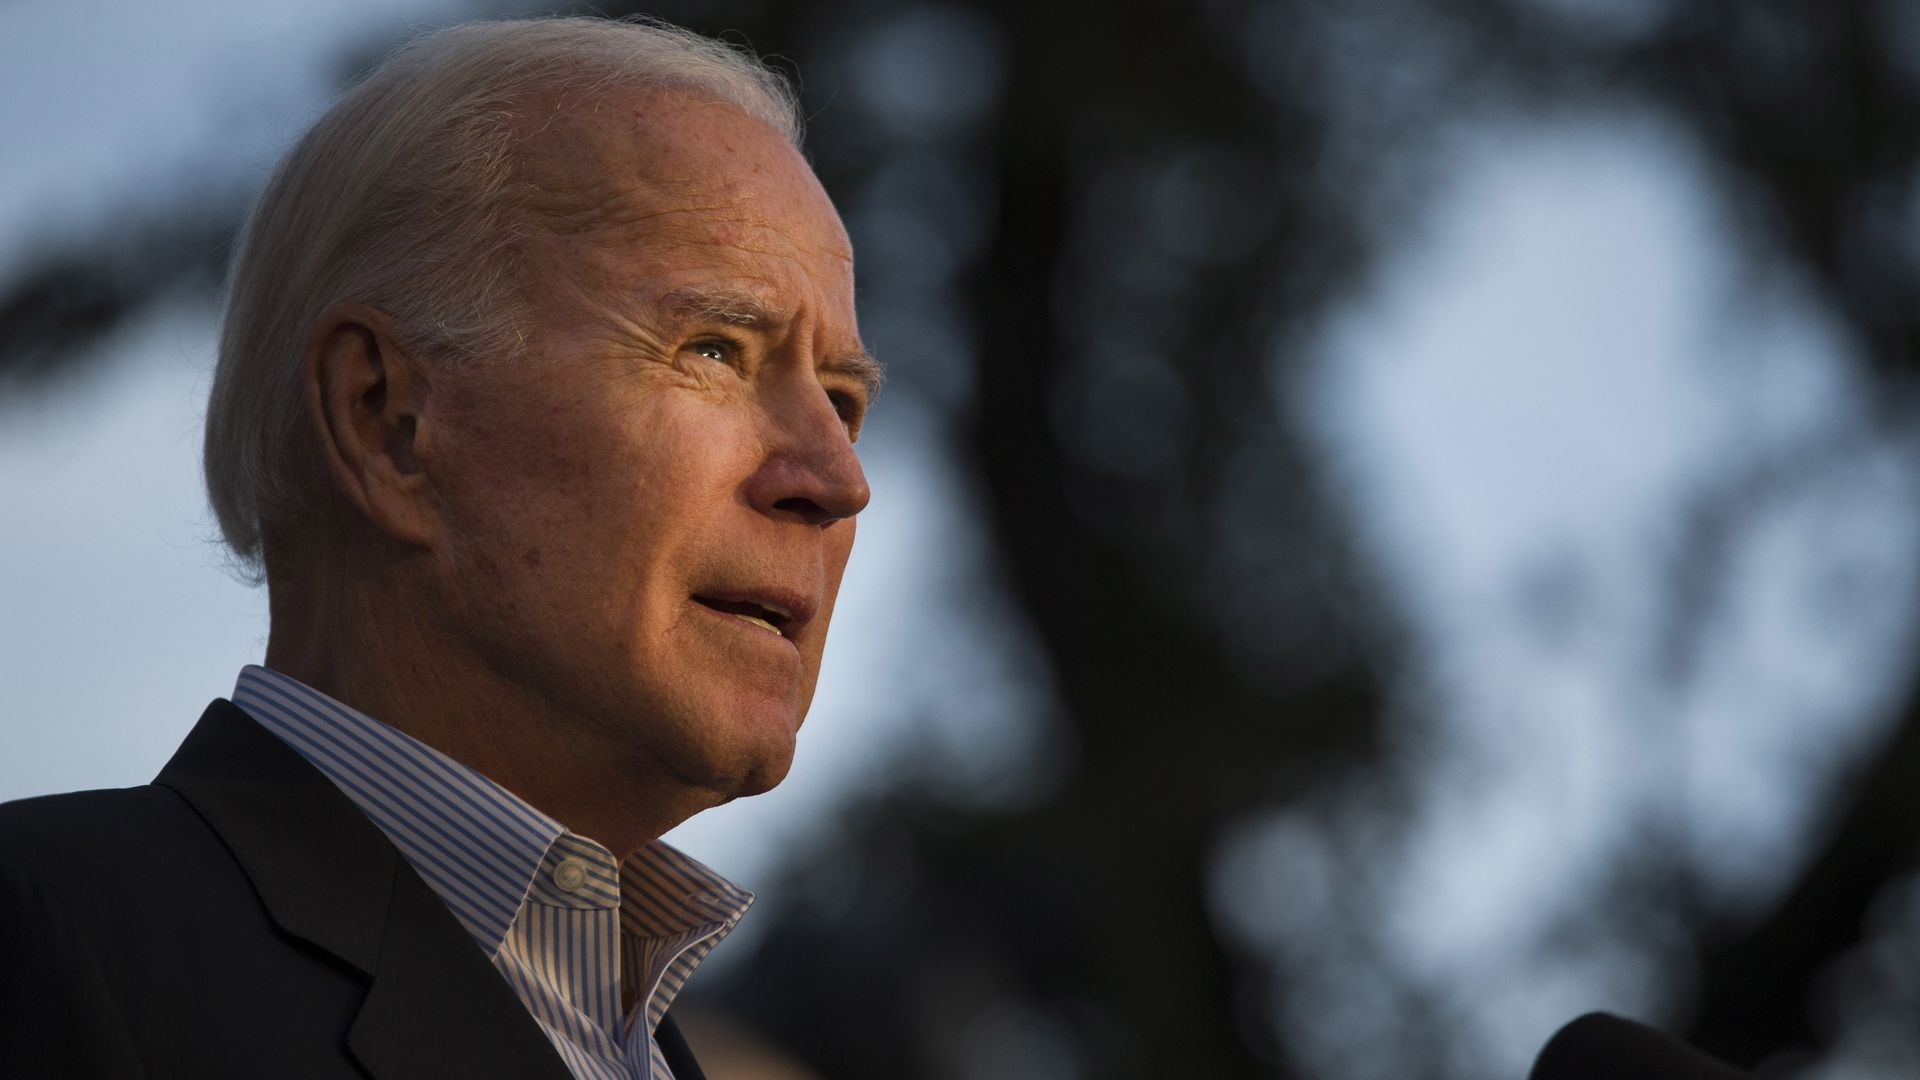 Democratic presidential candidate and former U.S. Vice President Joe Biden speaks at a community event while campaigning on December 13, 2019 in San Antonio, Texas